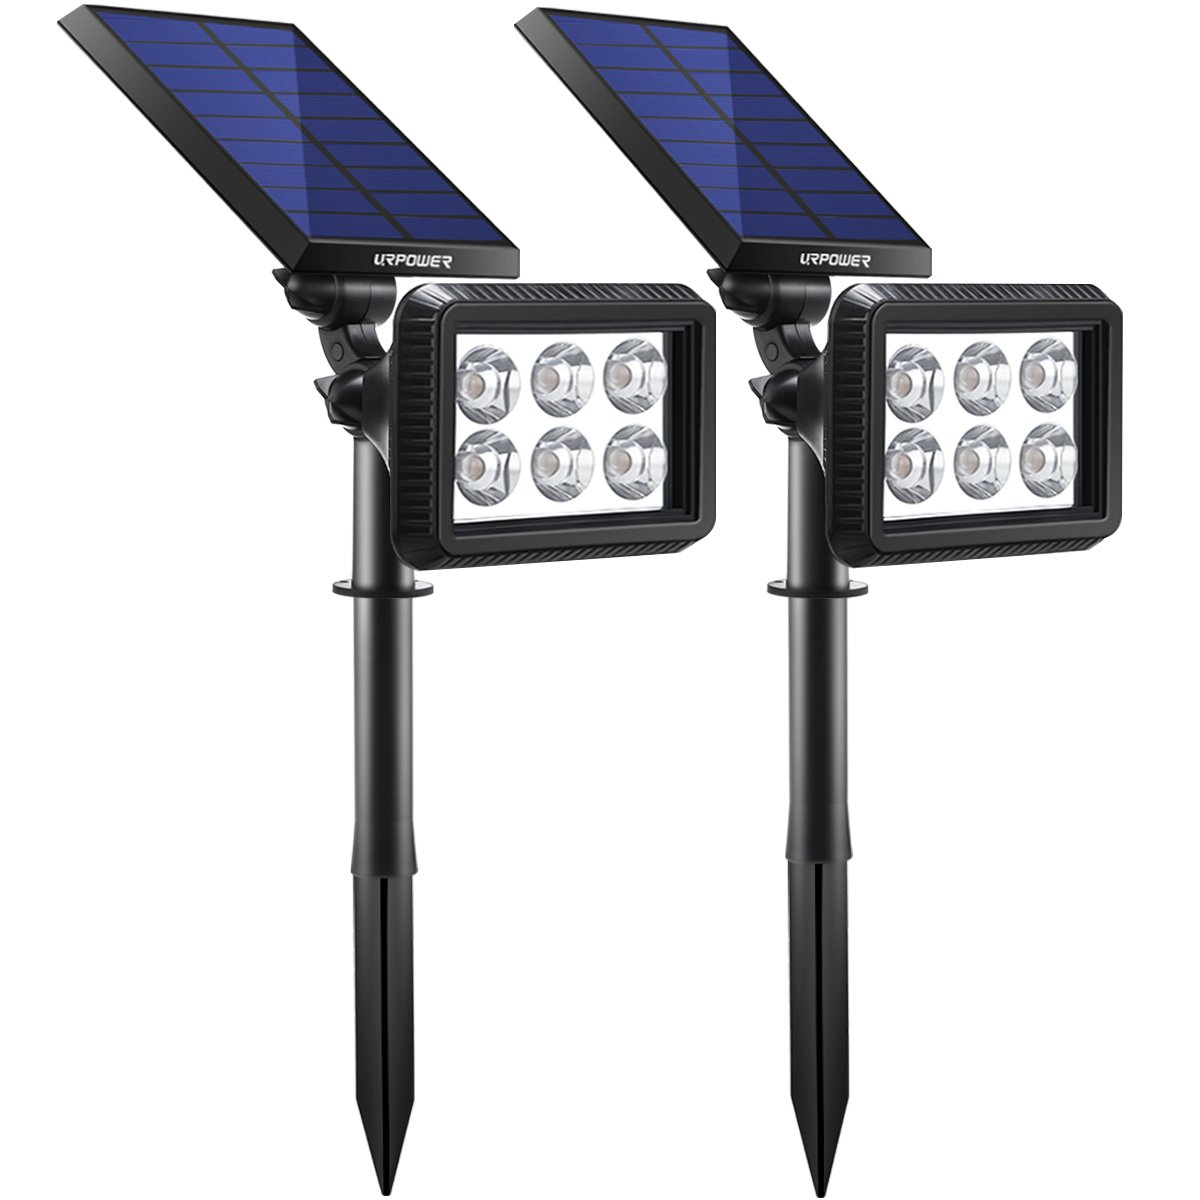 URPOWER Solar Lights Outdoor, Upgraded 2 Modes Solar Lights 2-in-1 Waterproof Solar Spotlight Auto On/Off Solar Wall Lights Pathway Lights Landscape Lighting for Yard Garden Pool- Cool White (2 Pack)